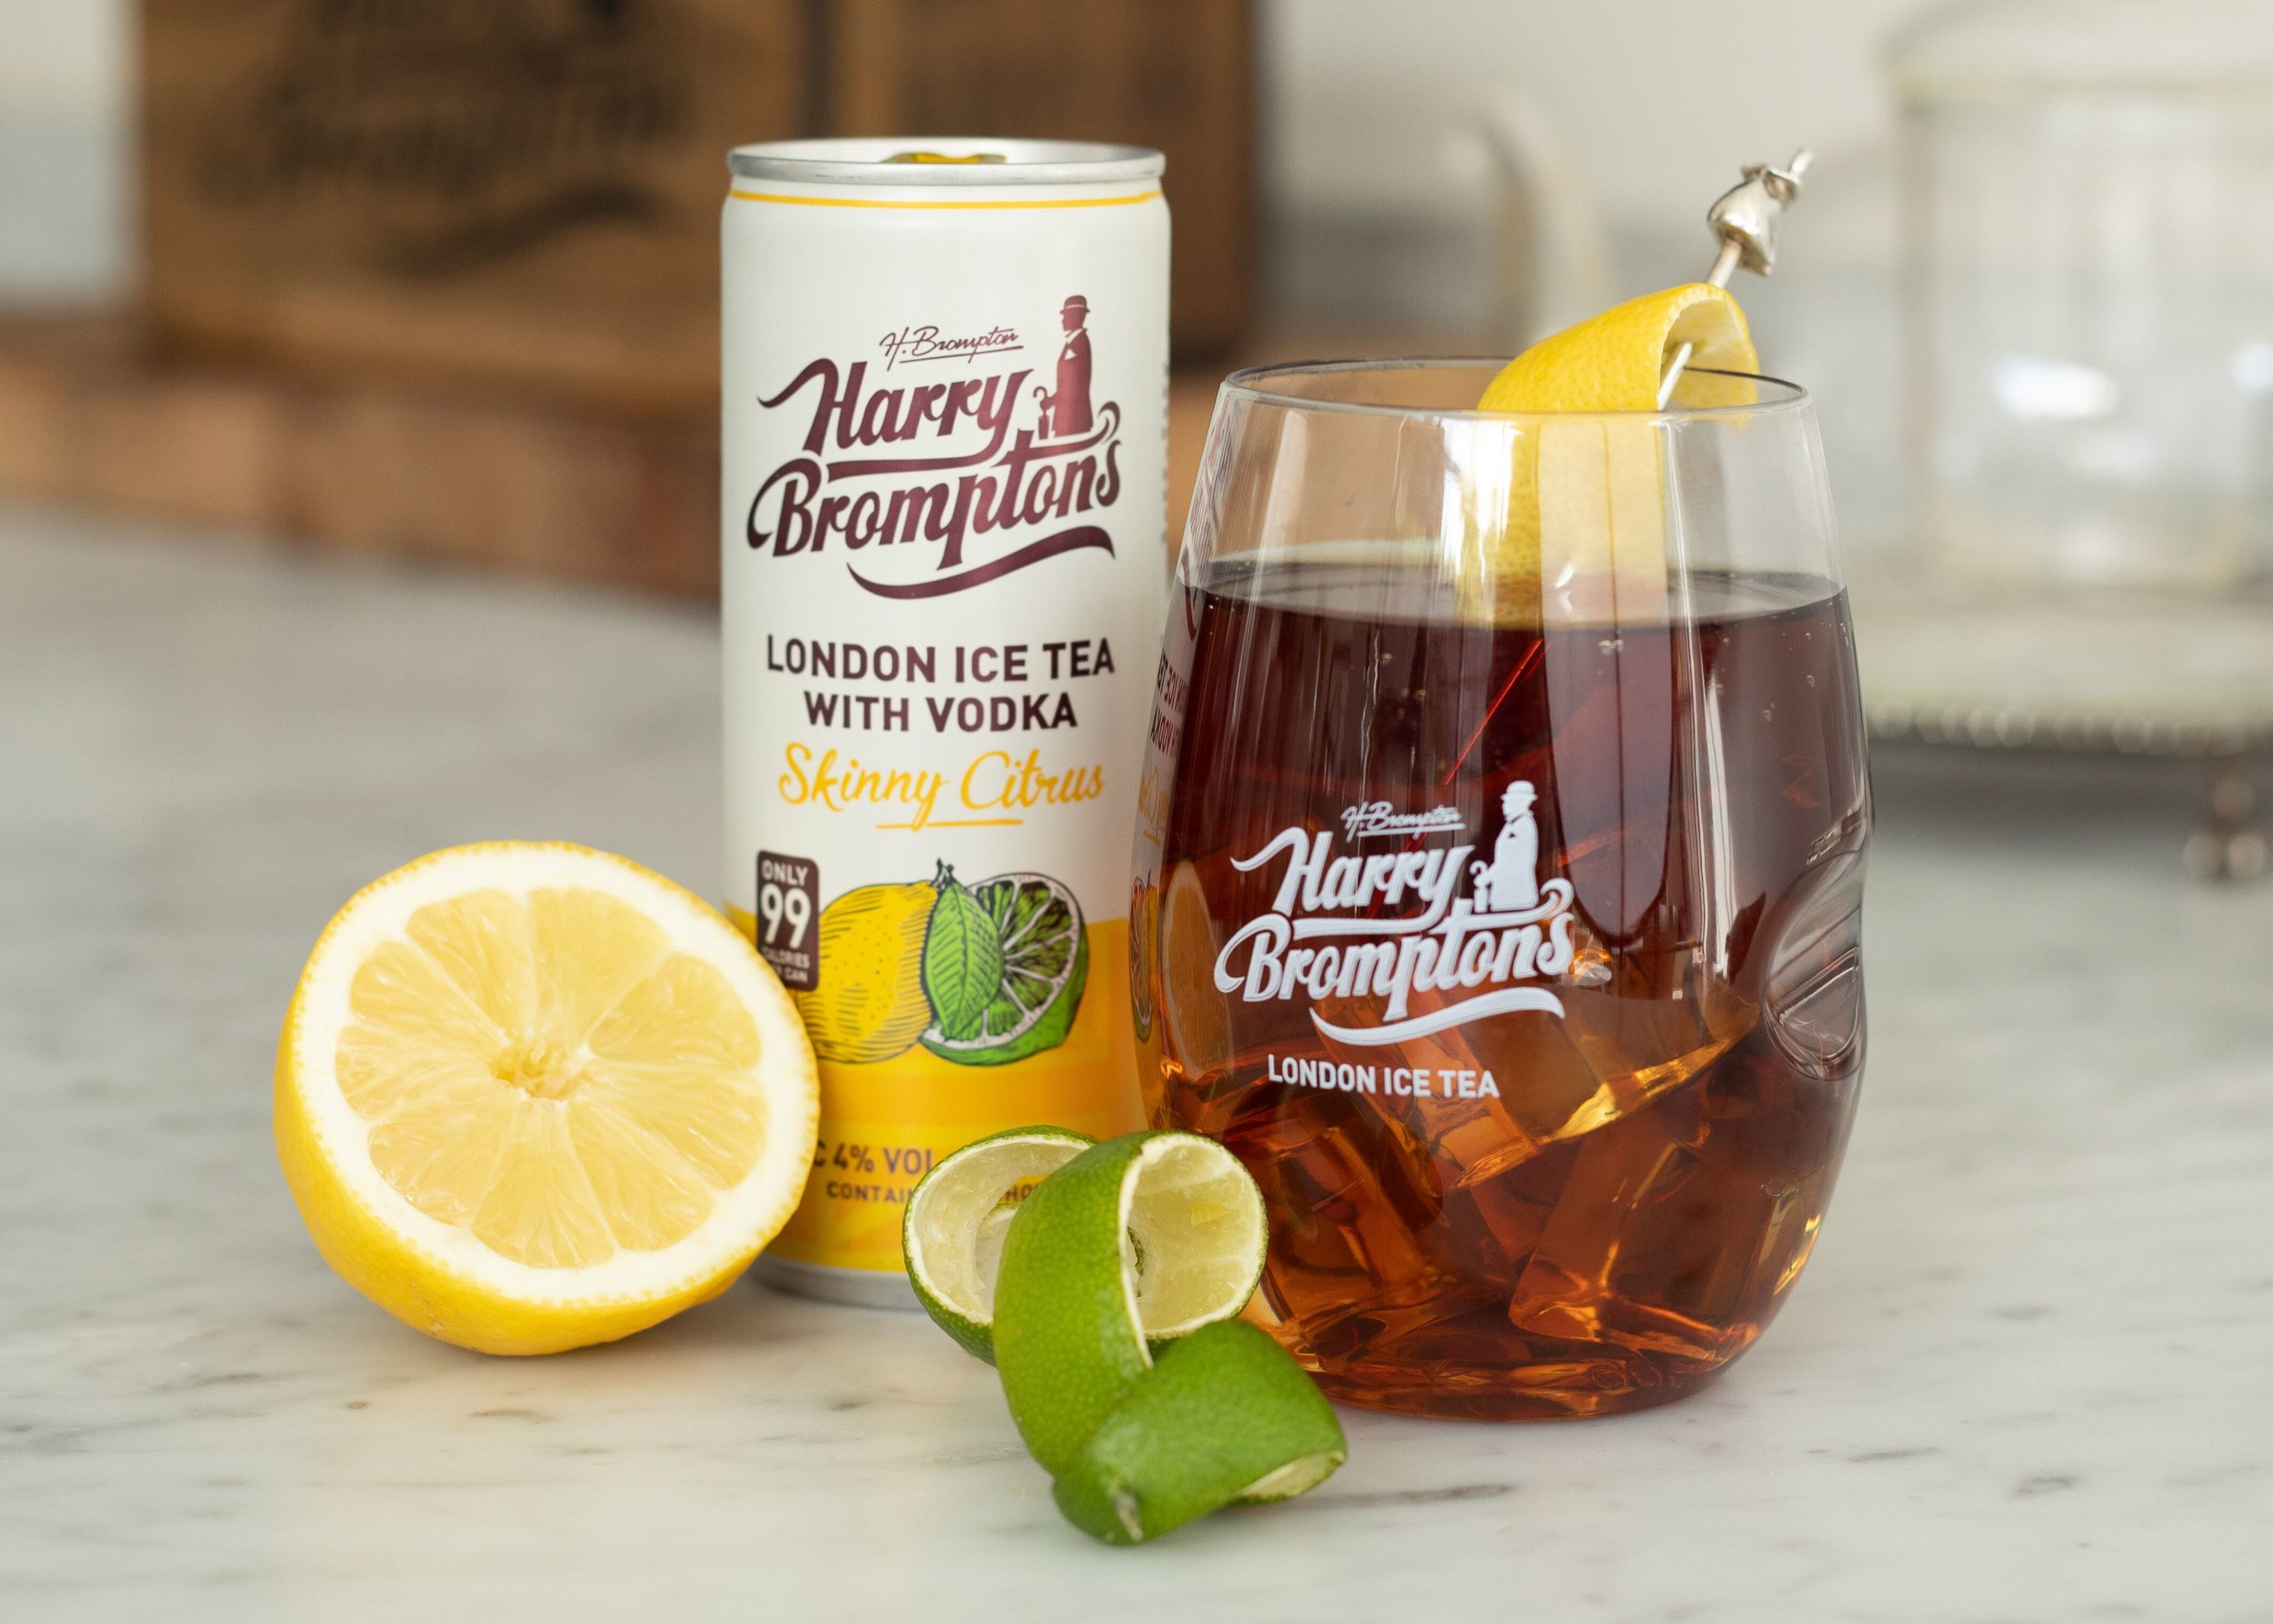 BLACK TEA AND VODKA WITH LEMON & LIME - Skinny Citrus Ice tea with Vodka comes in at 99 calories per can and contains zesty, refreshing lemons and limes.